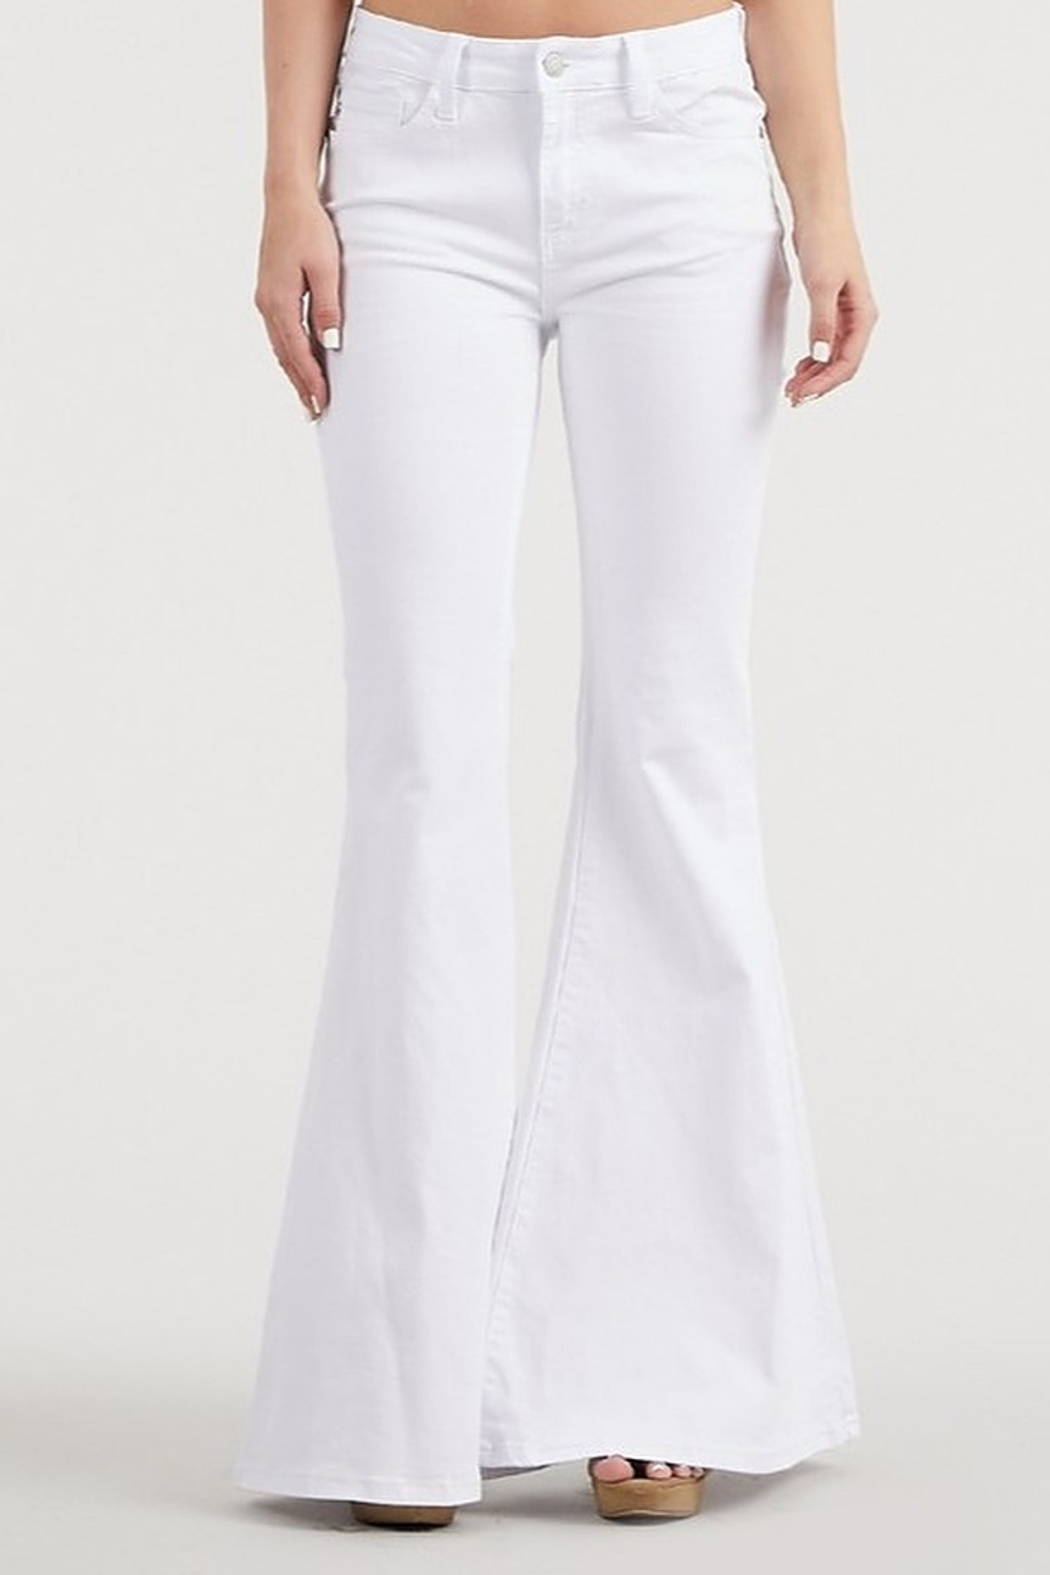 Judy Blue White Denim Bell-Bottoms - Front Cropped Image